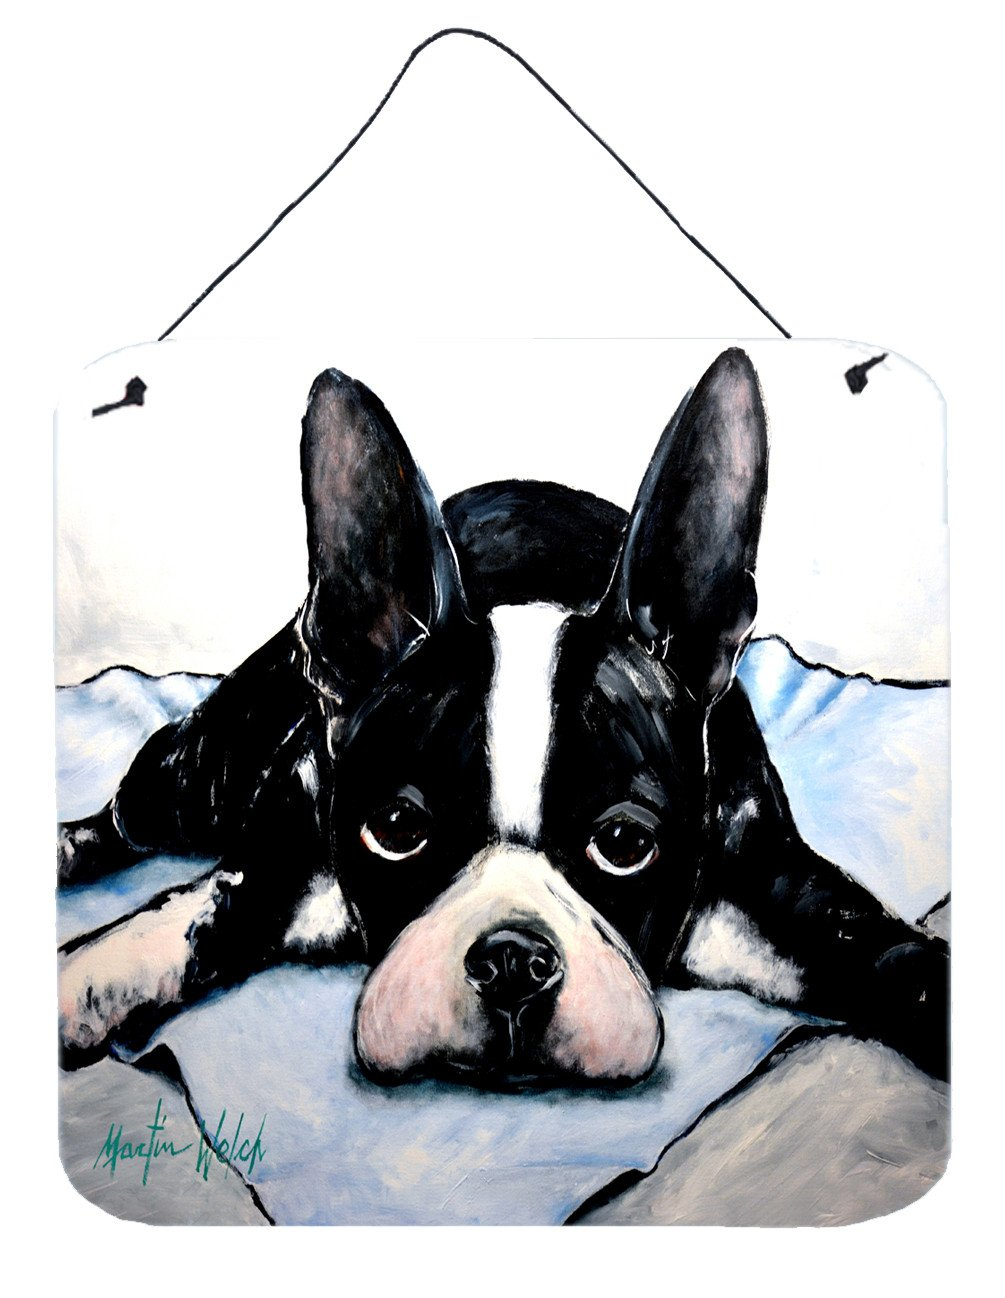 Boston Terrier Jake Dog Tired Wall or Door Hanging Prints MW1241DS66 by Caroline's Treasures